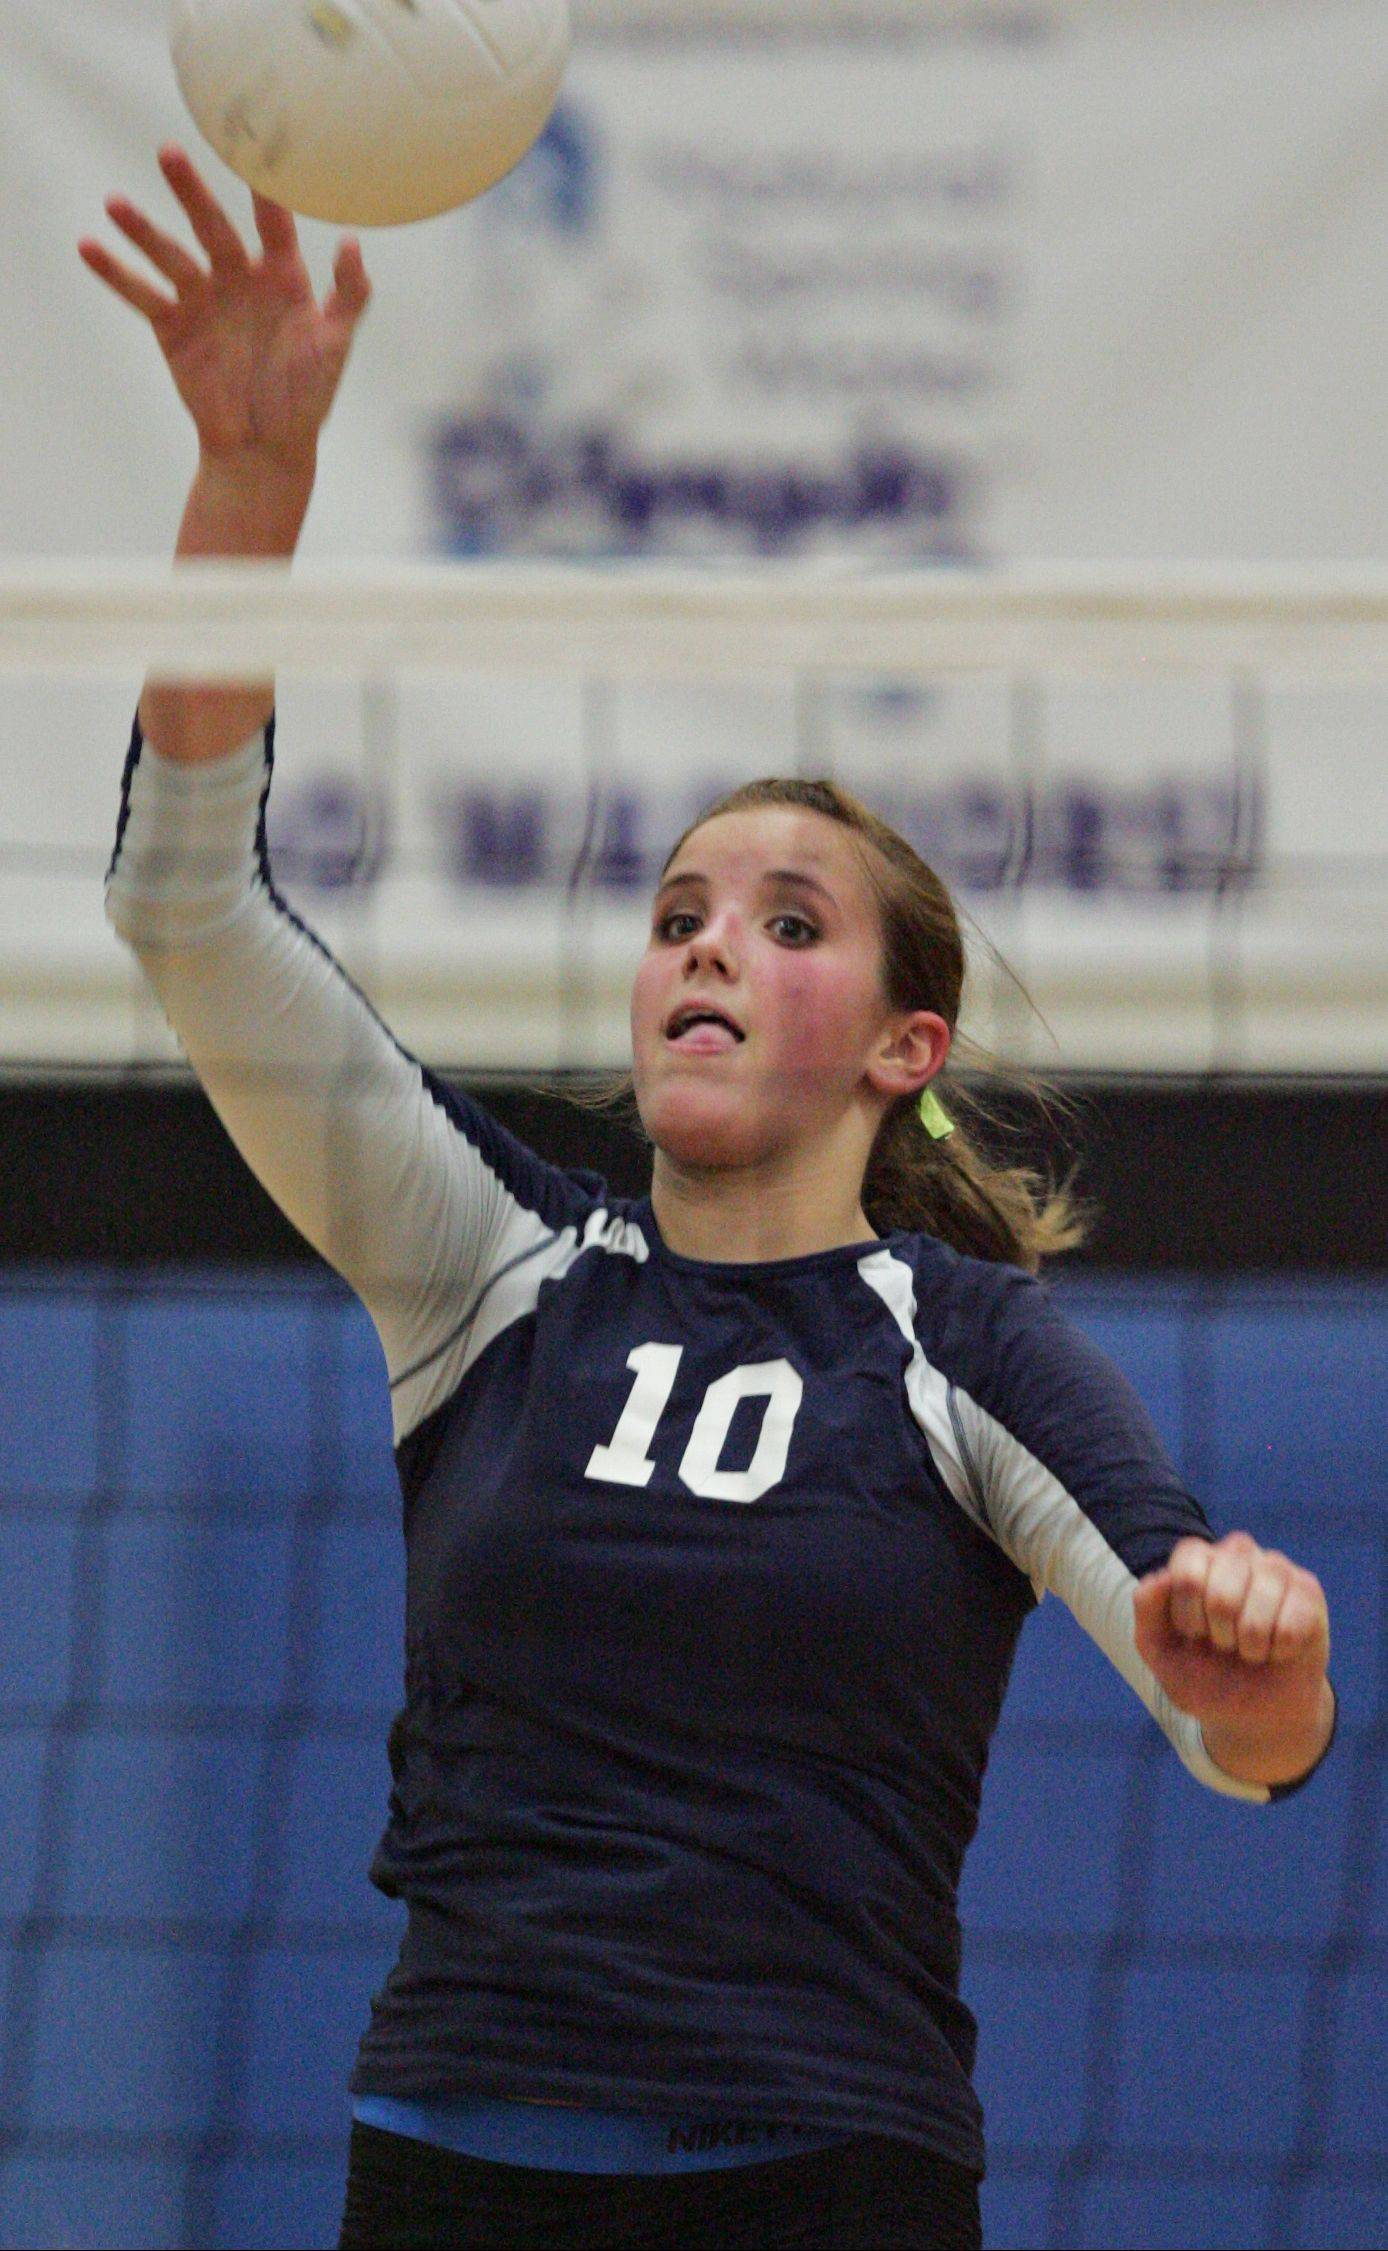 Senior Sydney Doby is back to lead Harvest Christian's volleyball team again this season. The Lions have advanced to the Class 1A Elite Eight the past two years.